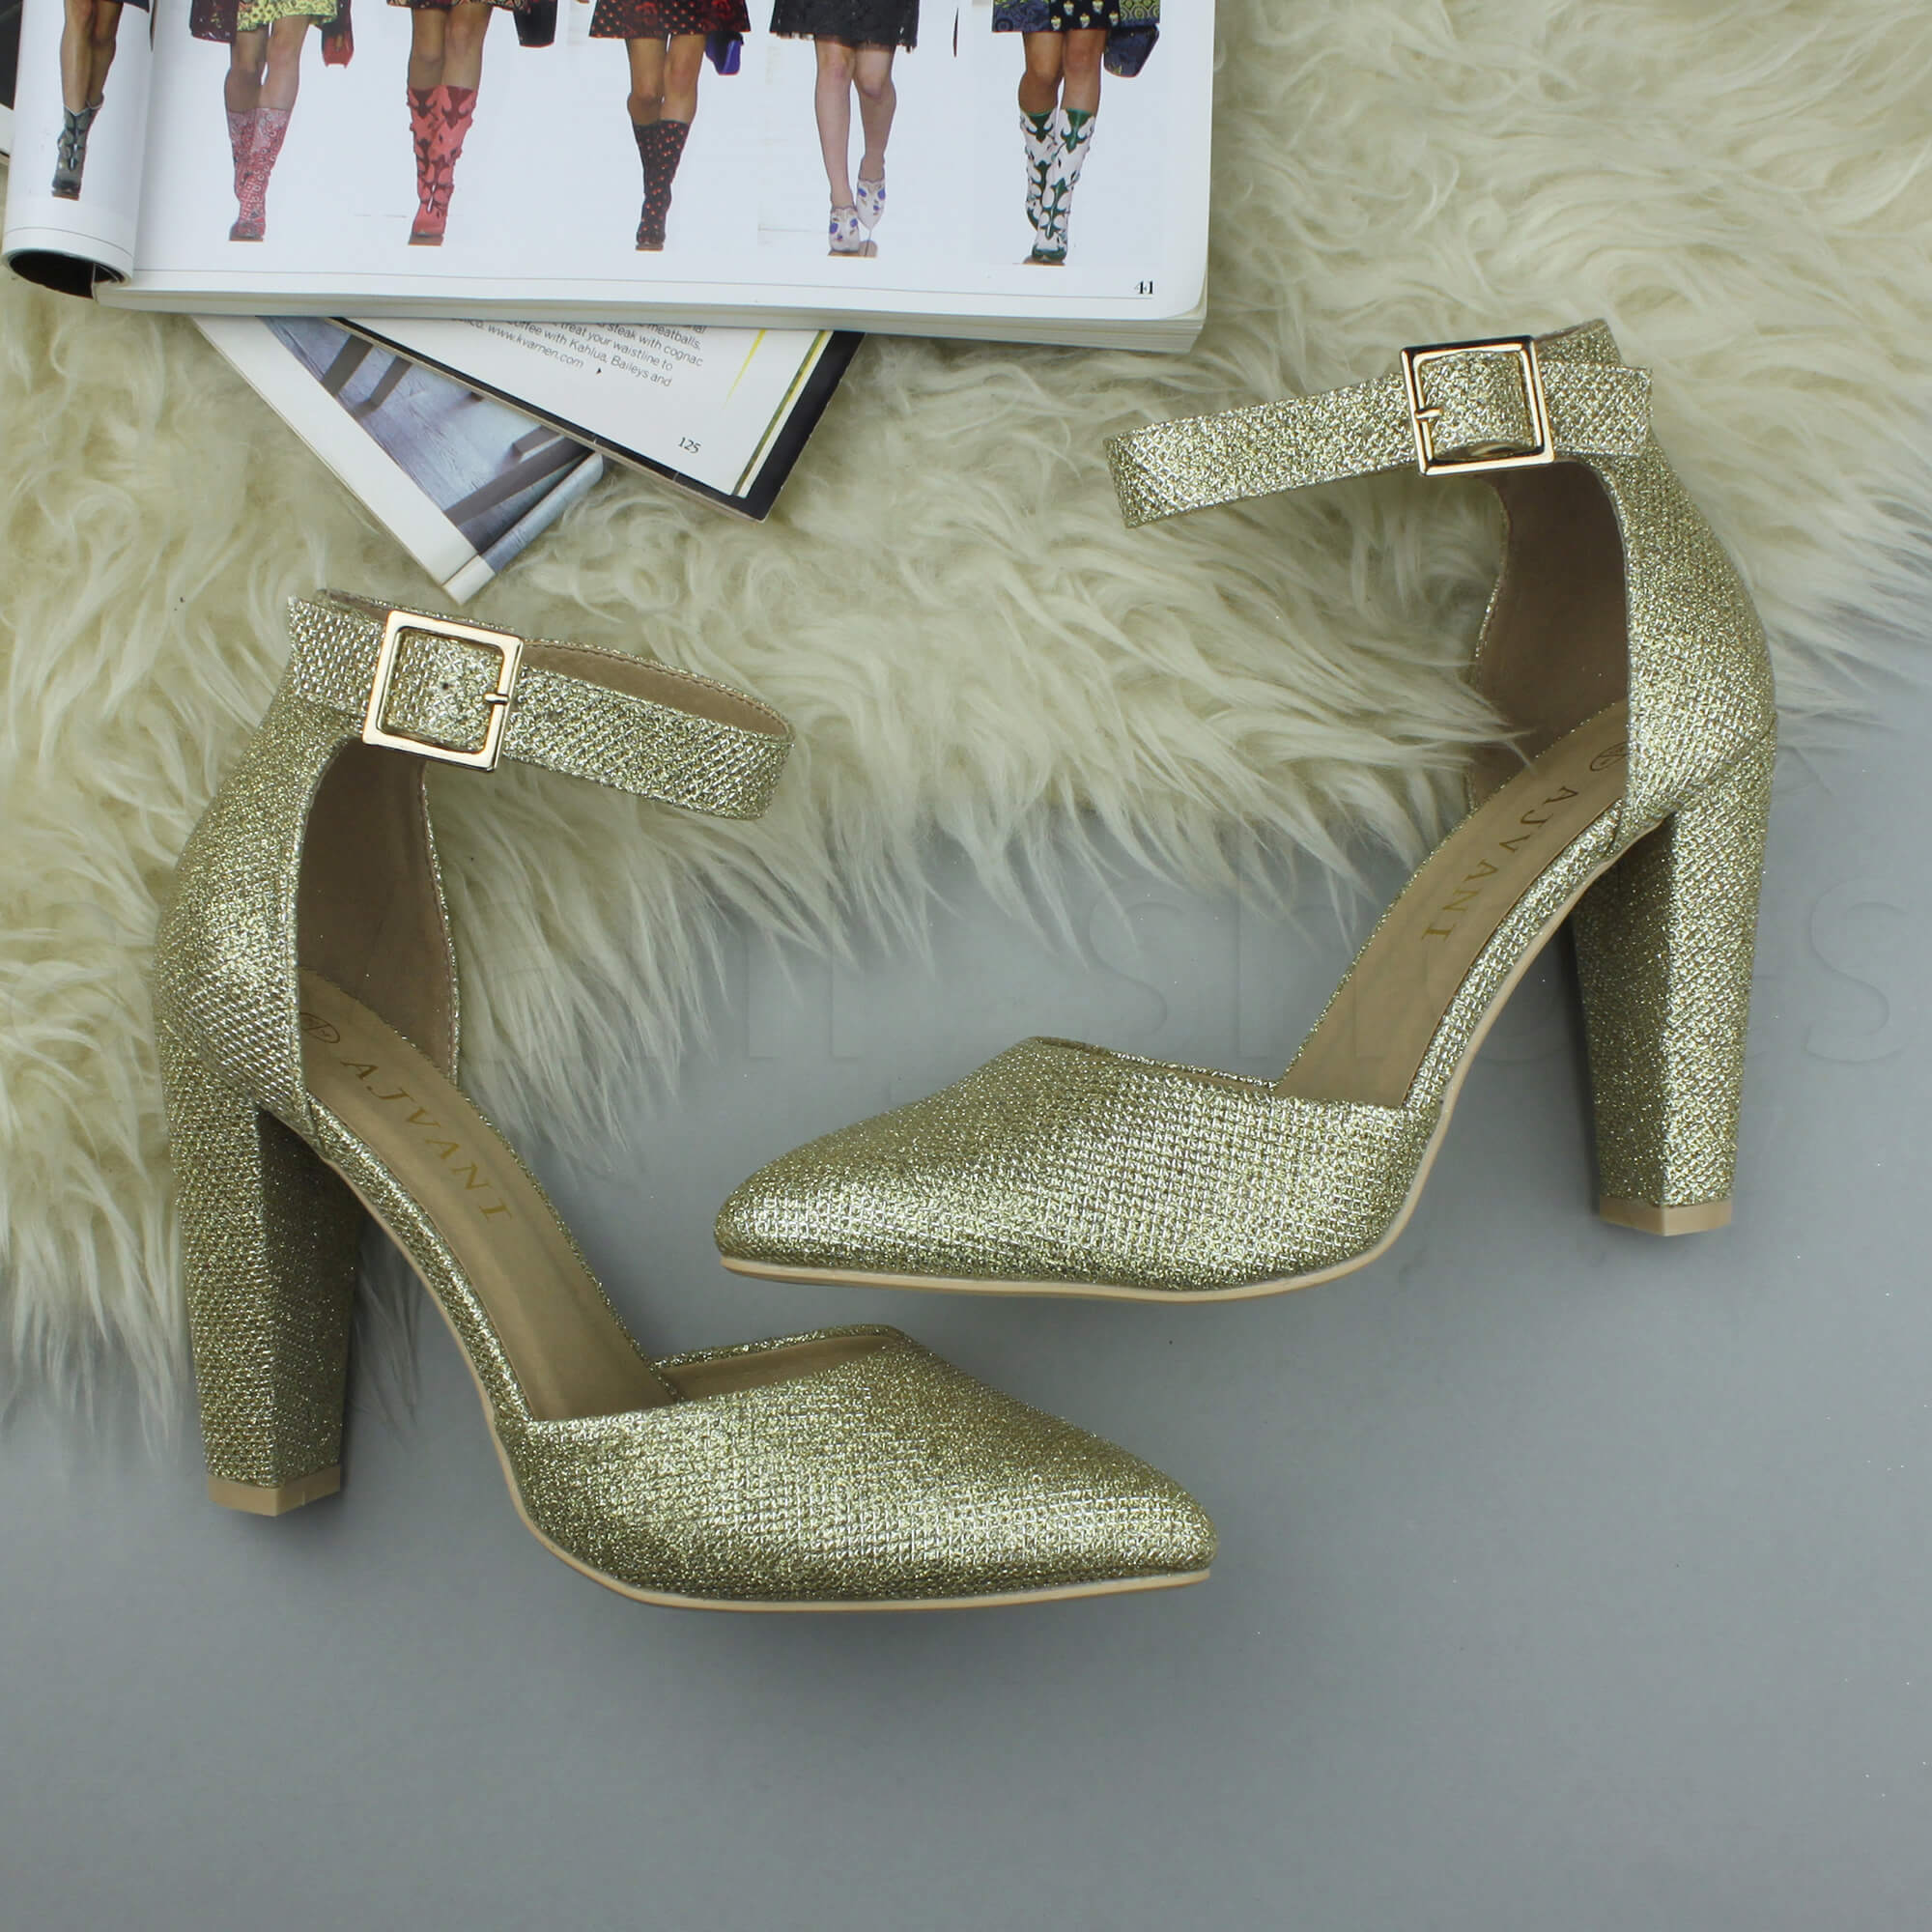 WOMENS-LADIES-HIGH-BLOCK-HEEL-ANKLE-STRAP-BUCKLE-POINTED-COURT-SHOES-SIZE thumbnail 75